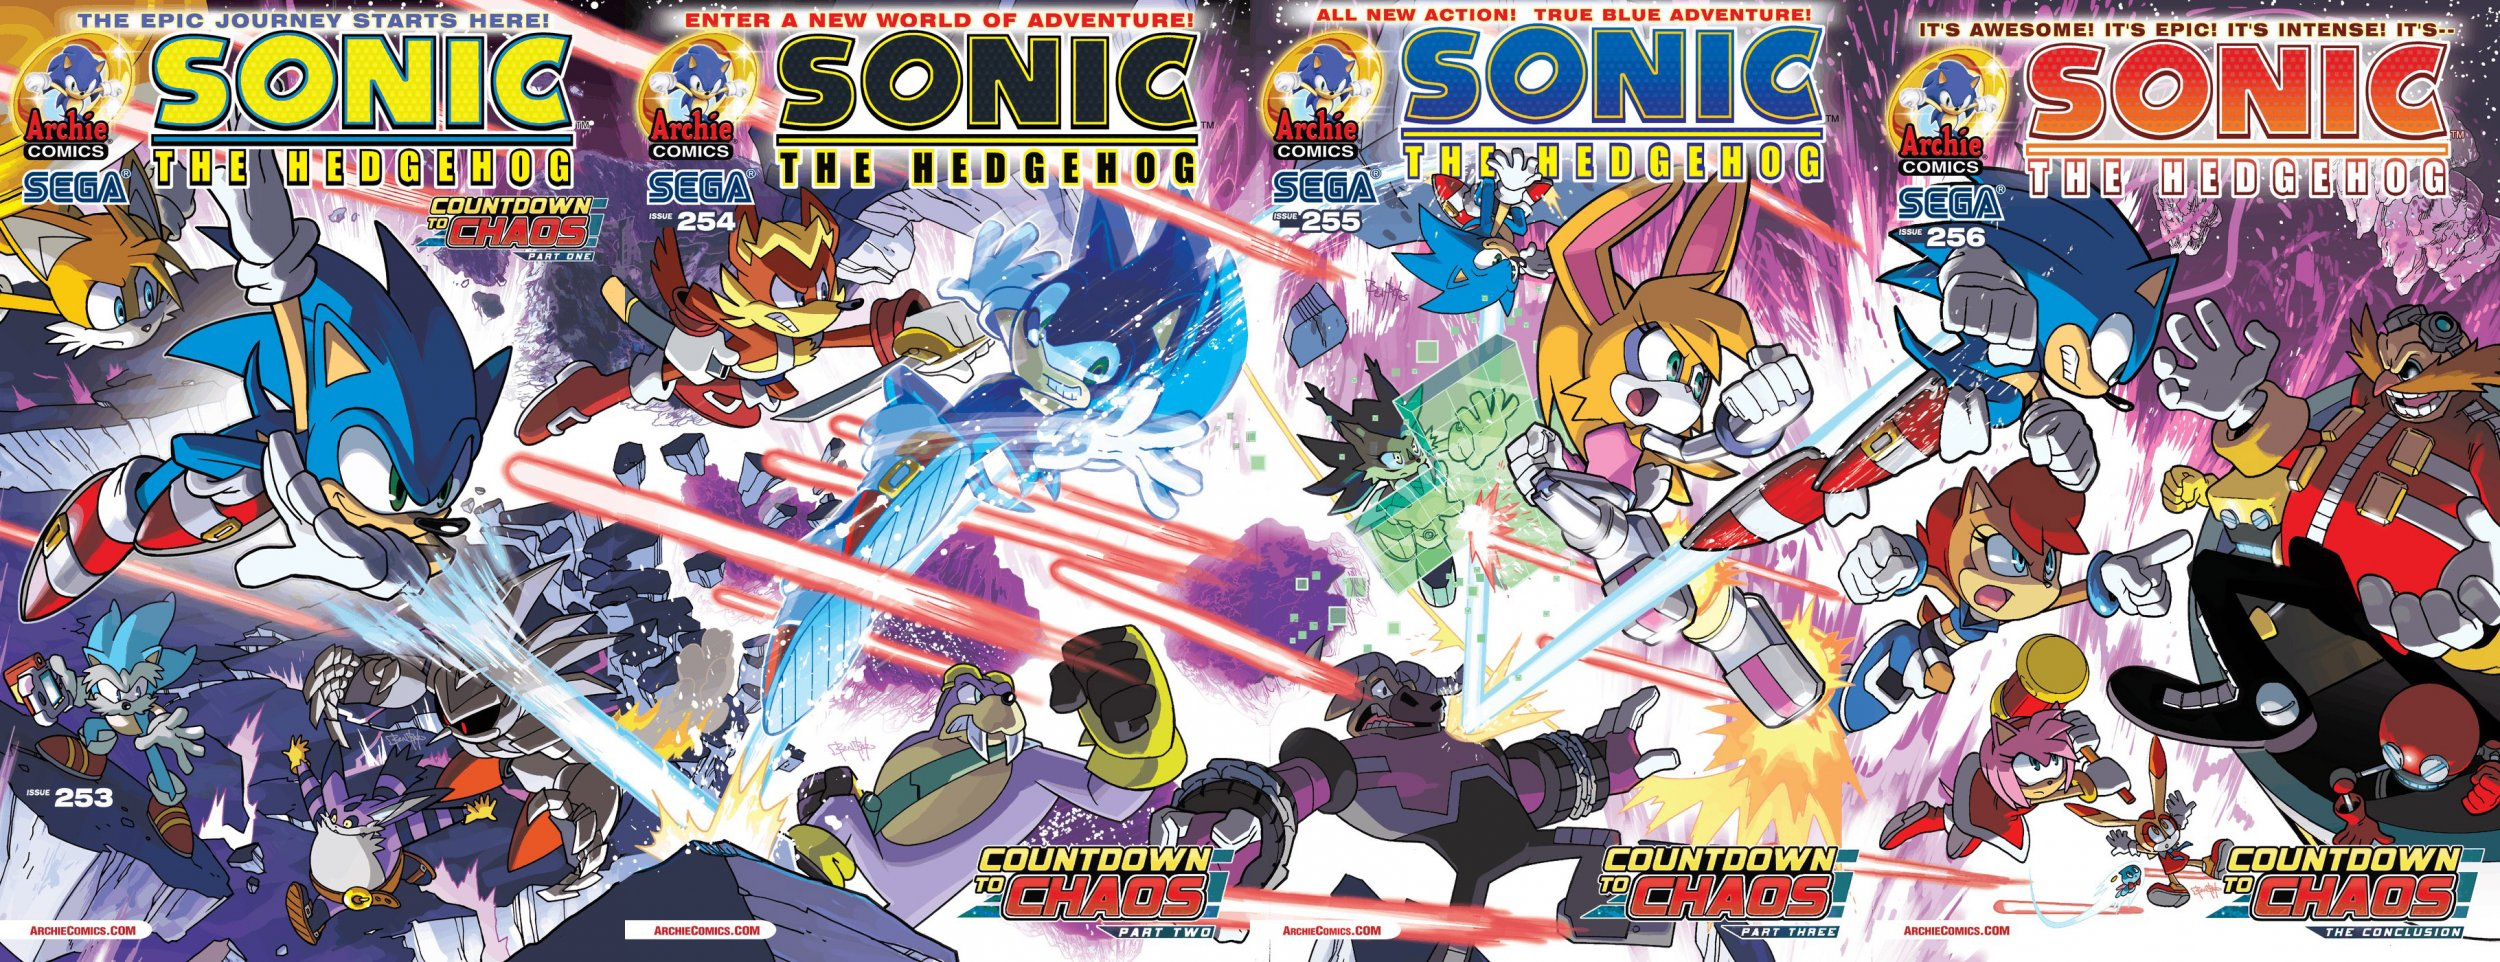 Sonic the Hedgehog 253-256 joined covers